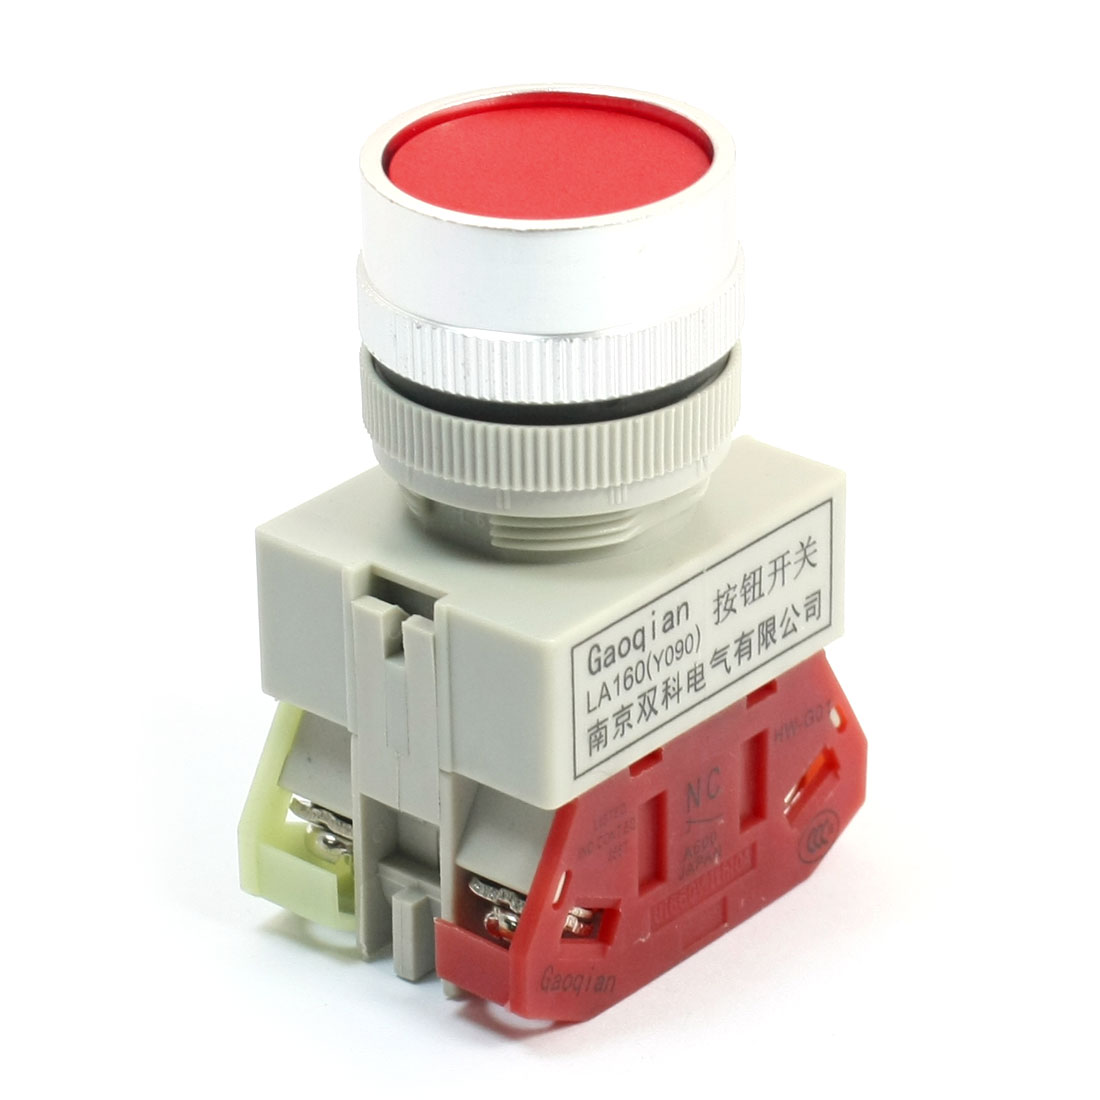 DPST Latching Type Red Round Head Operator Push Button Switch 660V 10A